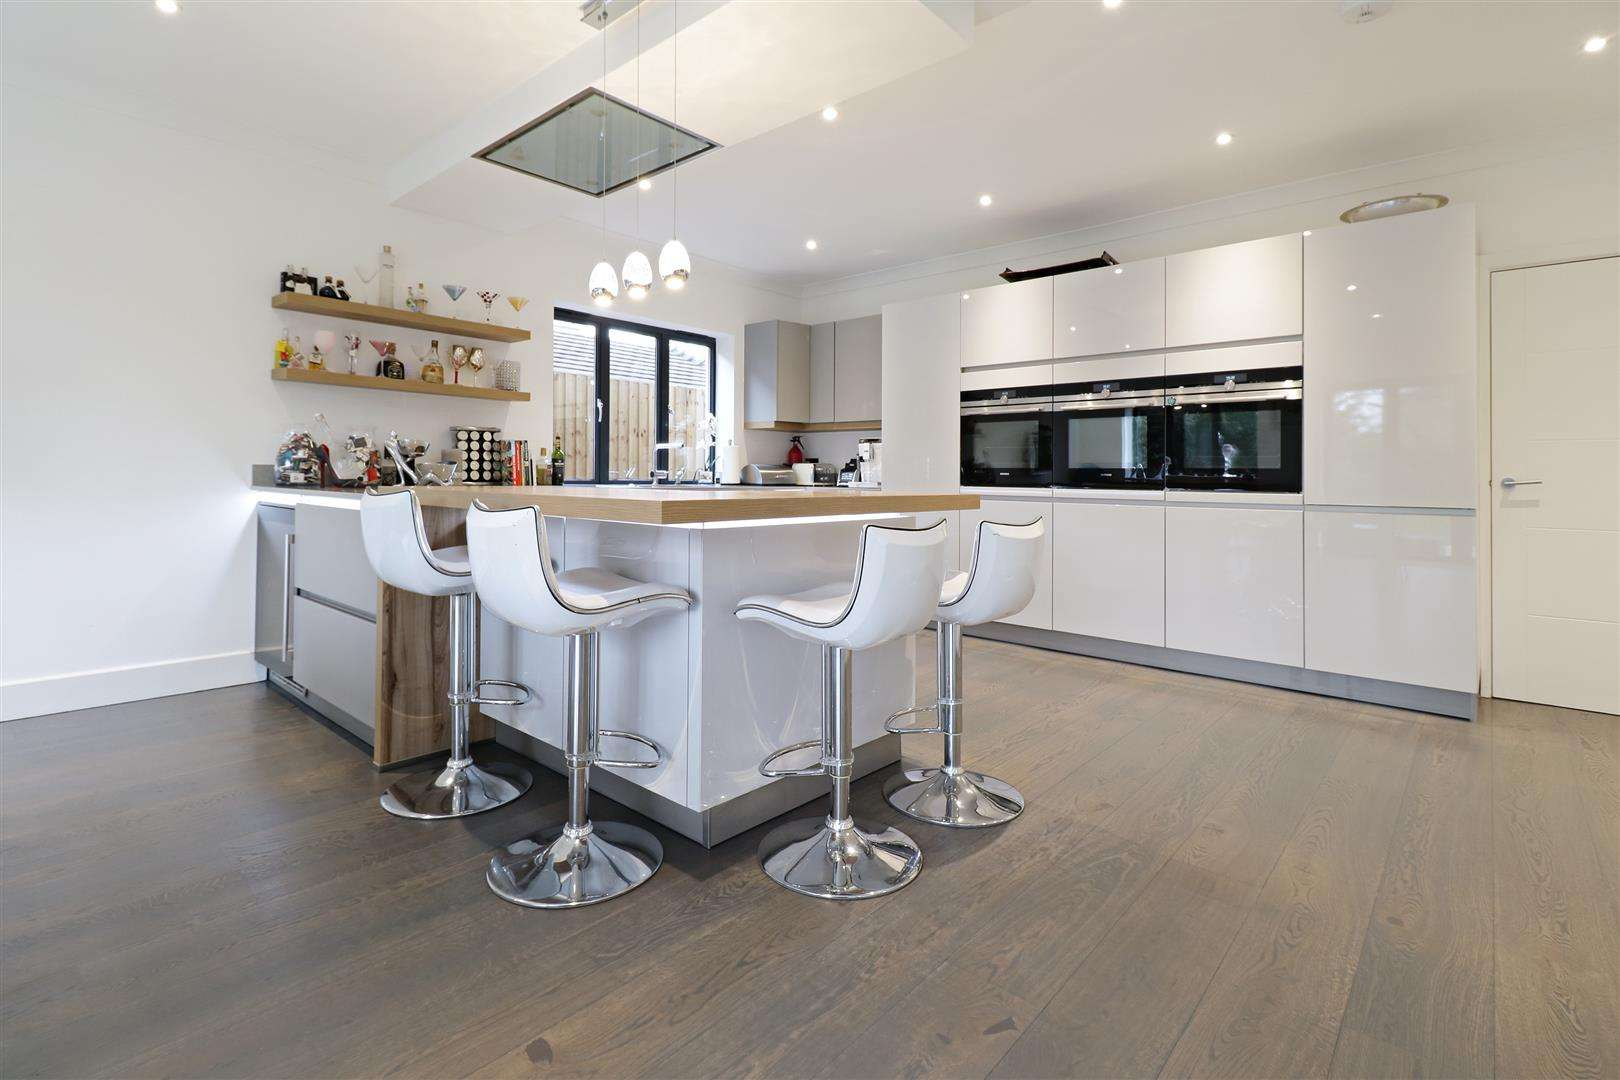 5 bed for sale in Watford Road, Radlett - (Property Image 2)